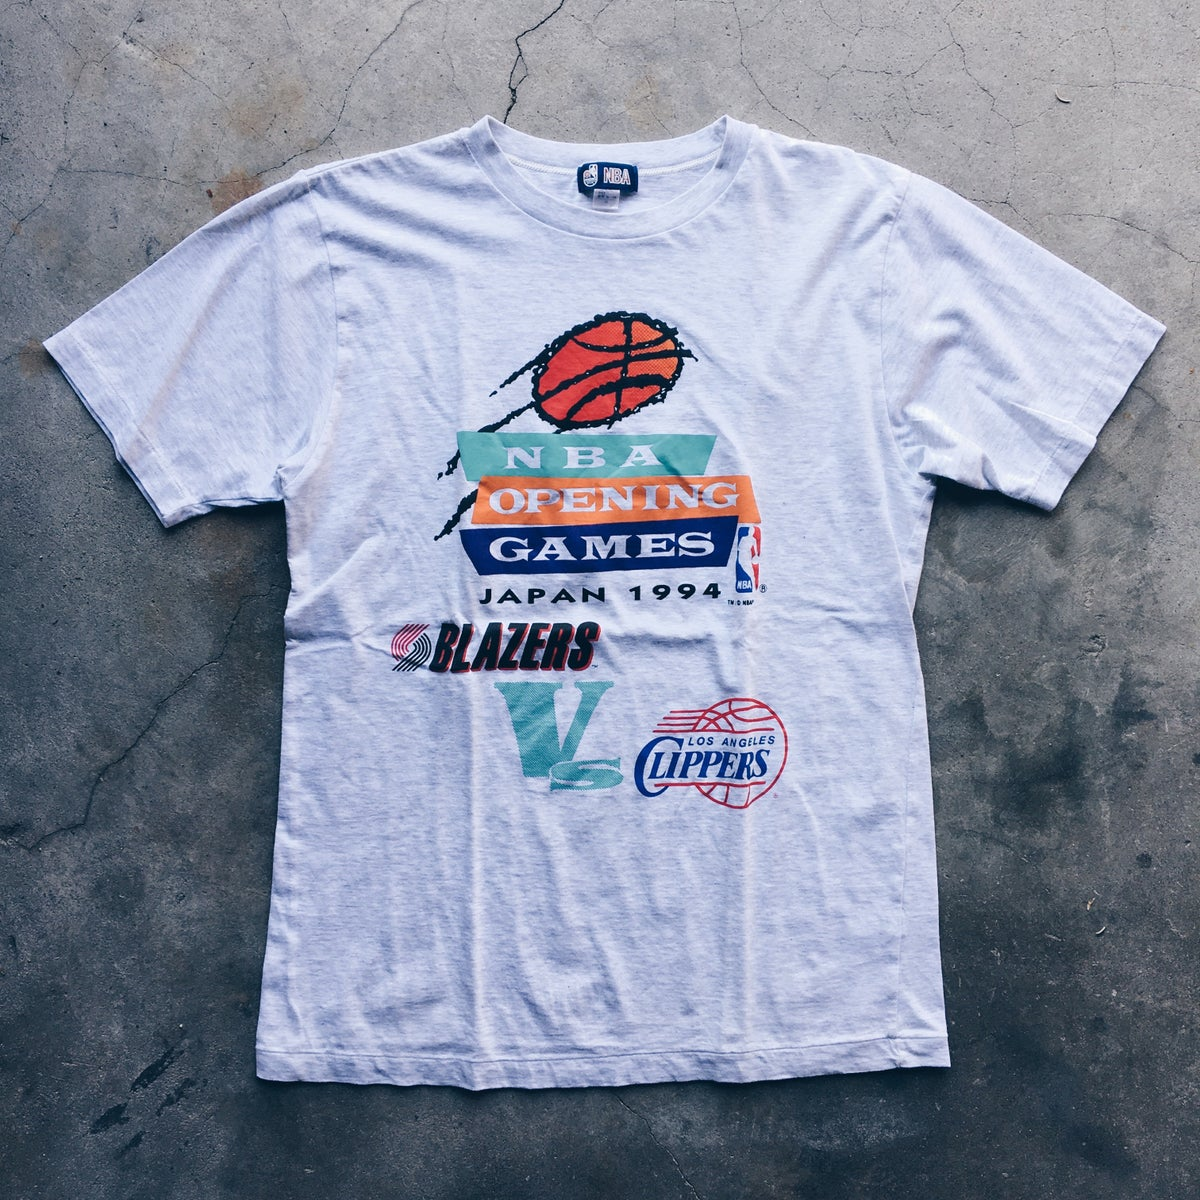 Image of Original 1994 Blazers Japan Games Tee.